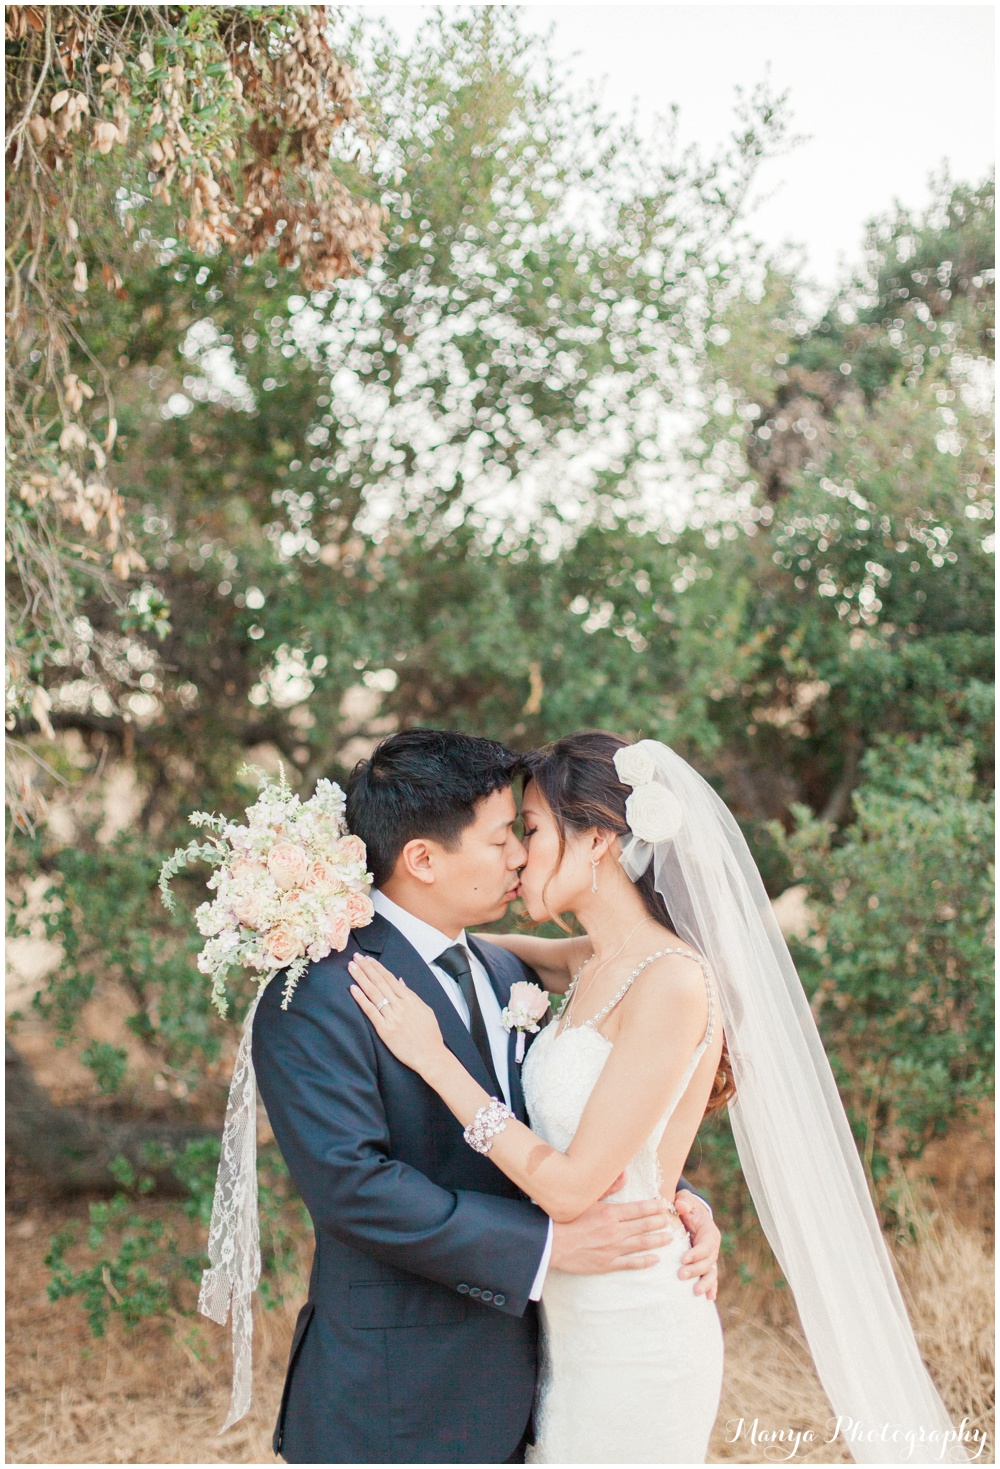 MandM_Wedding_Orange_County_Wedding_Photographer_Manya_Photography_Carbon_Thomas_F_Riley_Wilderness_Park__0061